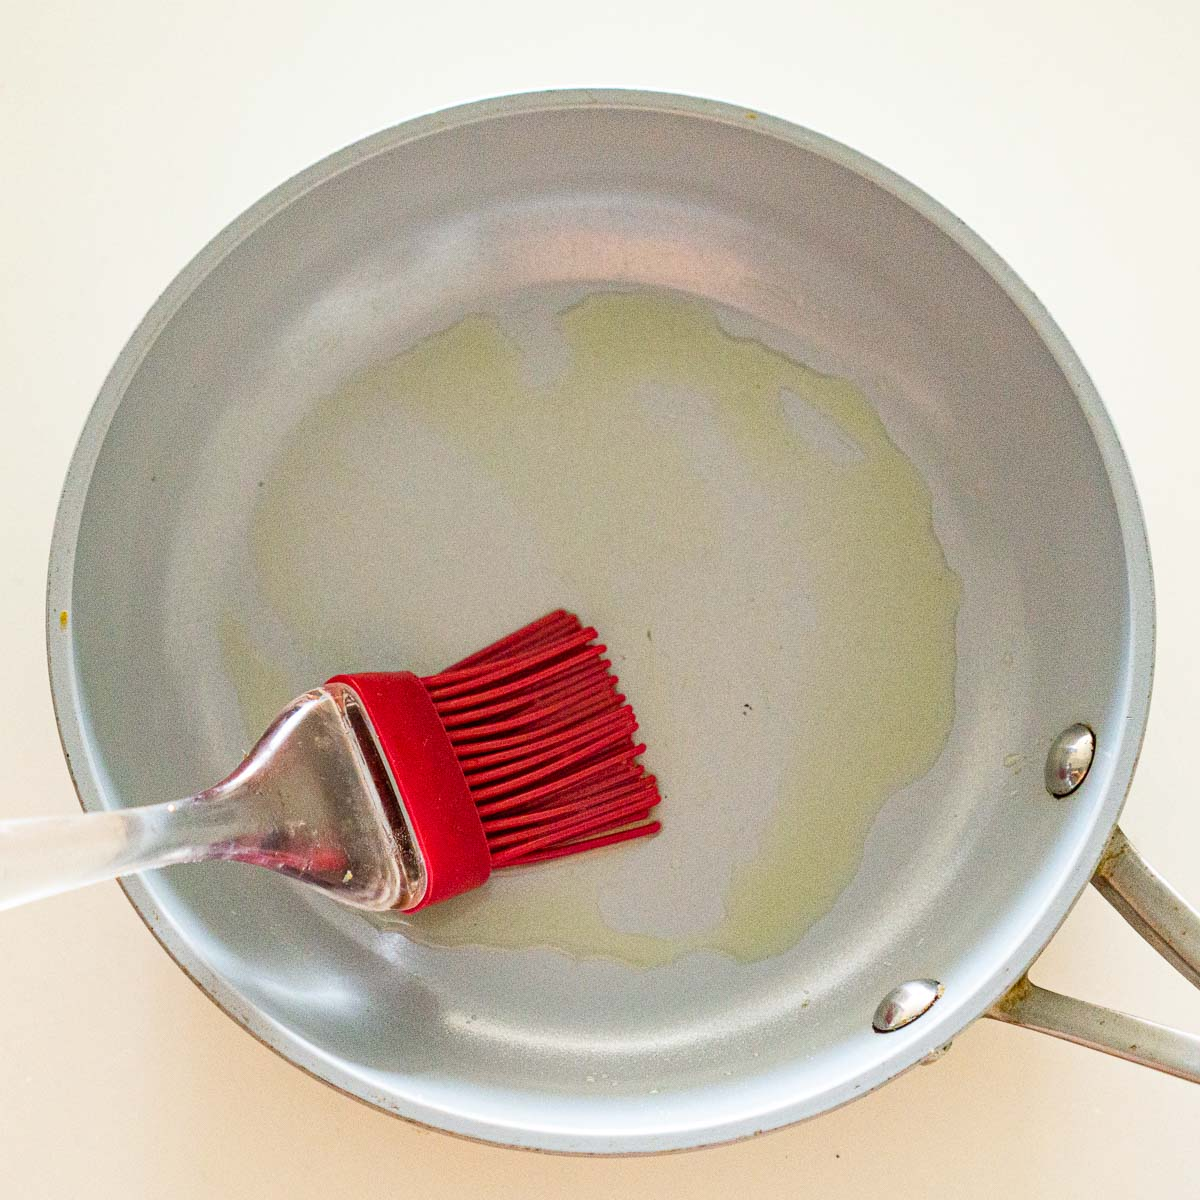 Brushing a non stick pan with oil.